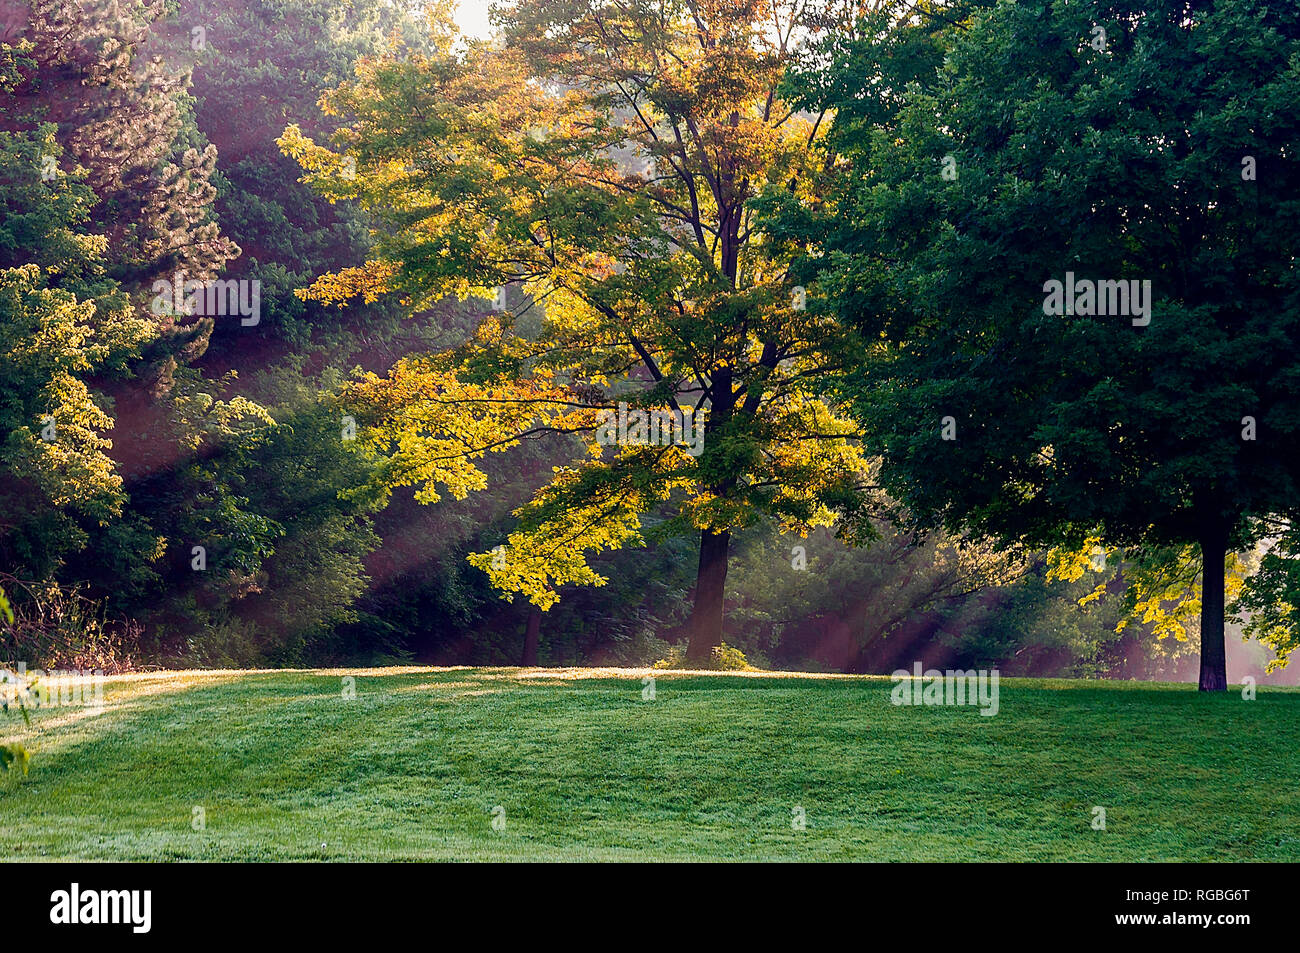 Early morning light streams through trees in a park, Ontario, Canada - Stock Image